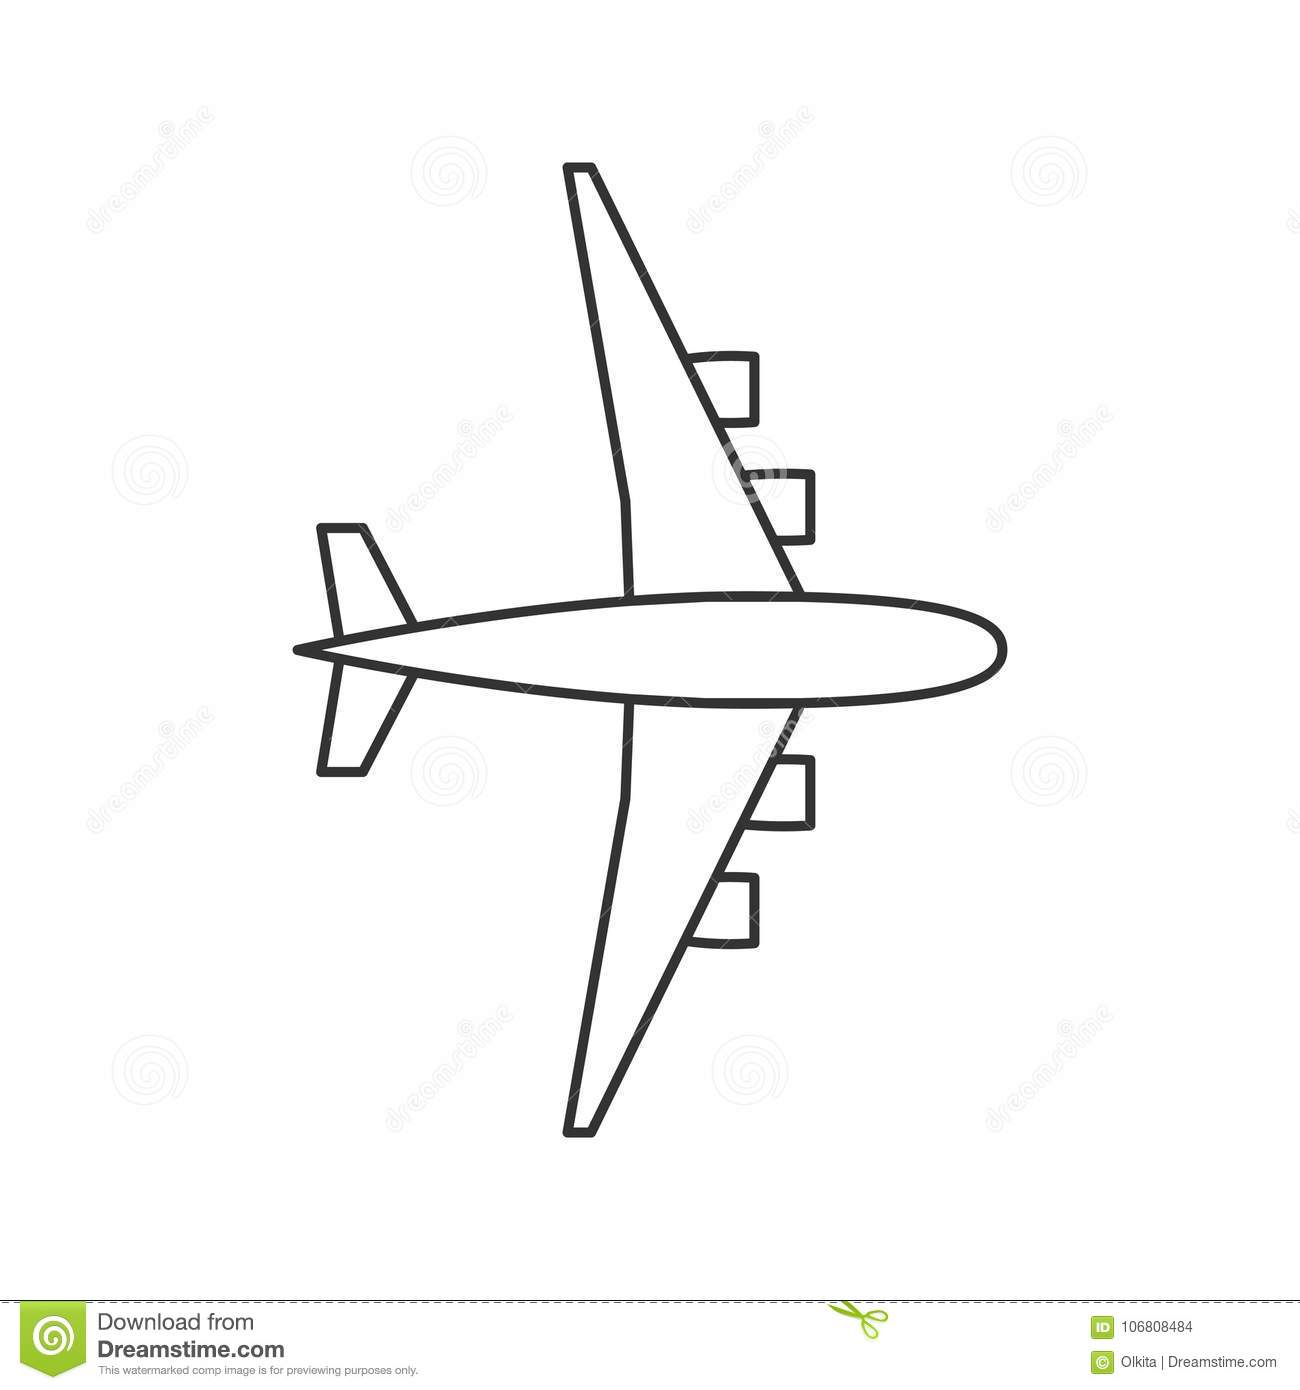 Black Outline Isolated Airplane On White Background. Line ...